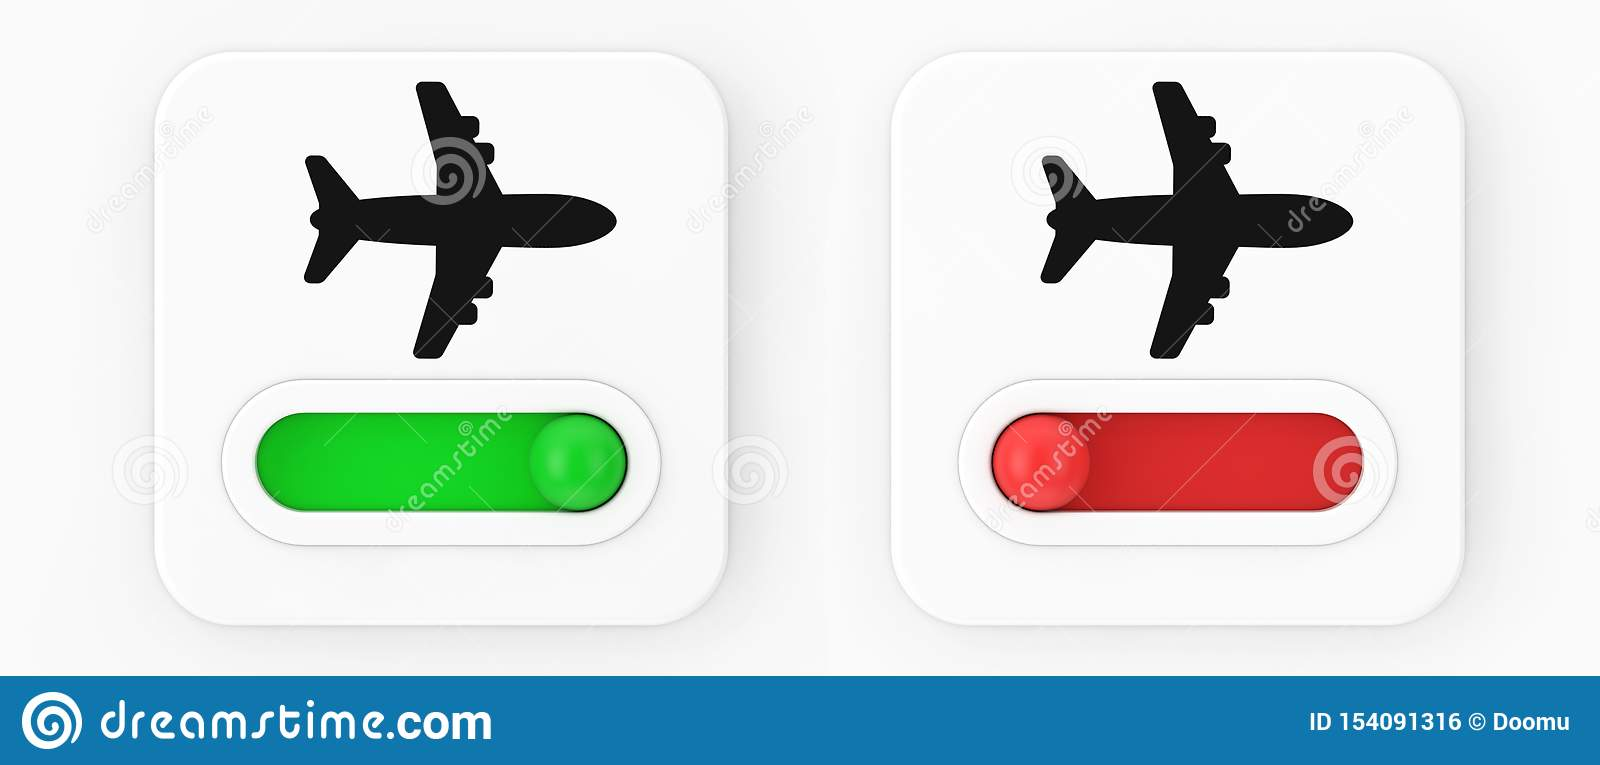 Airplane On Off Mode Toggle Switch Icon  3d Rendering Stock